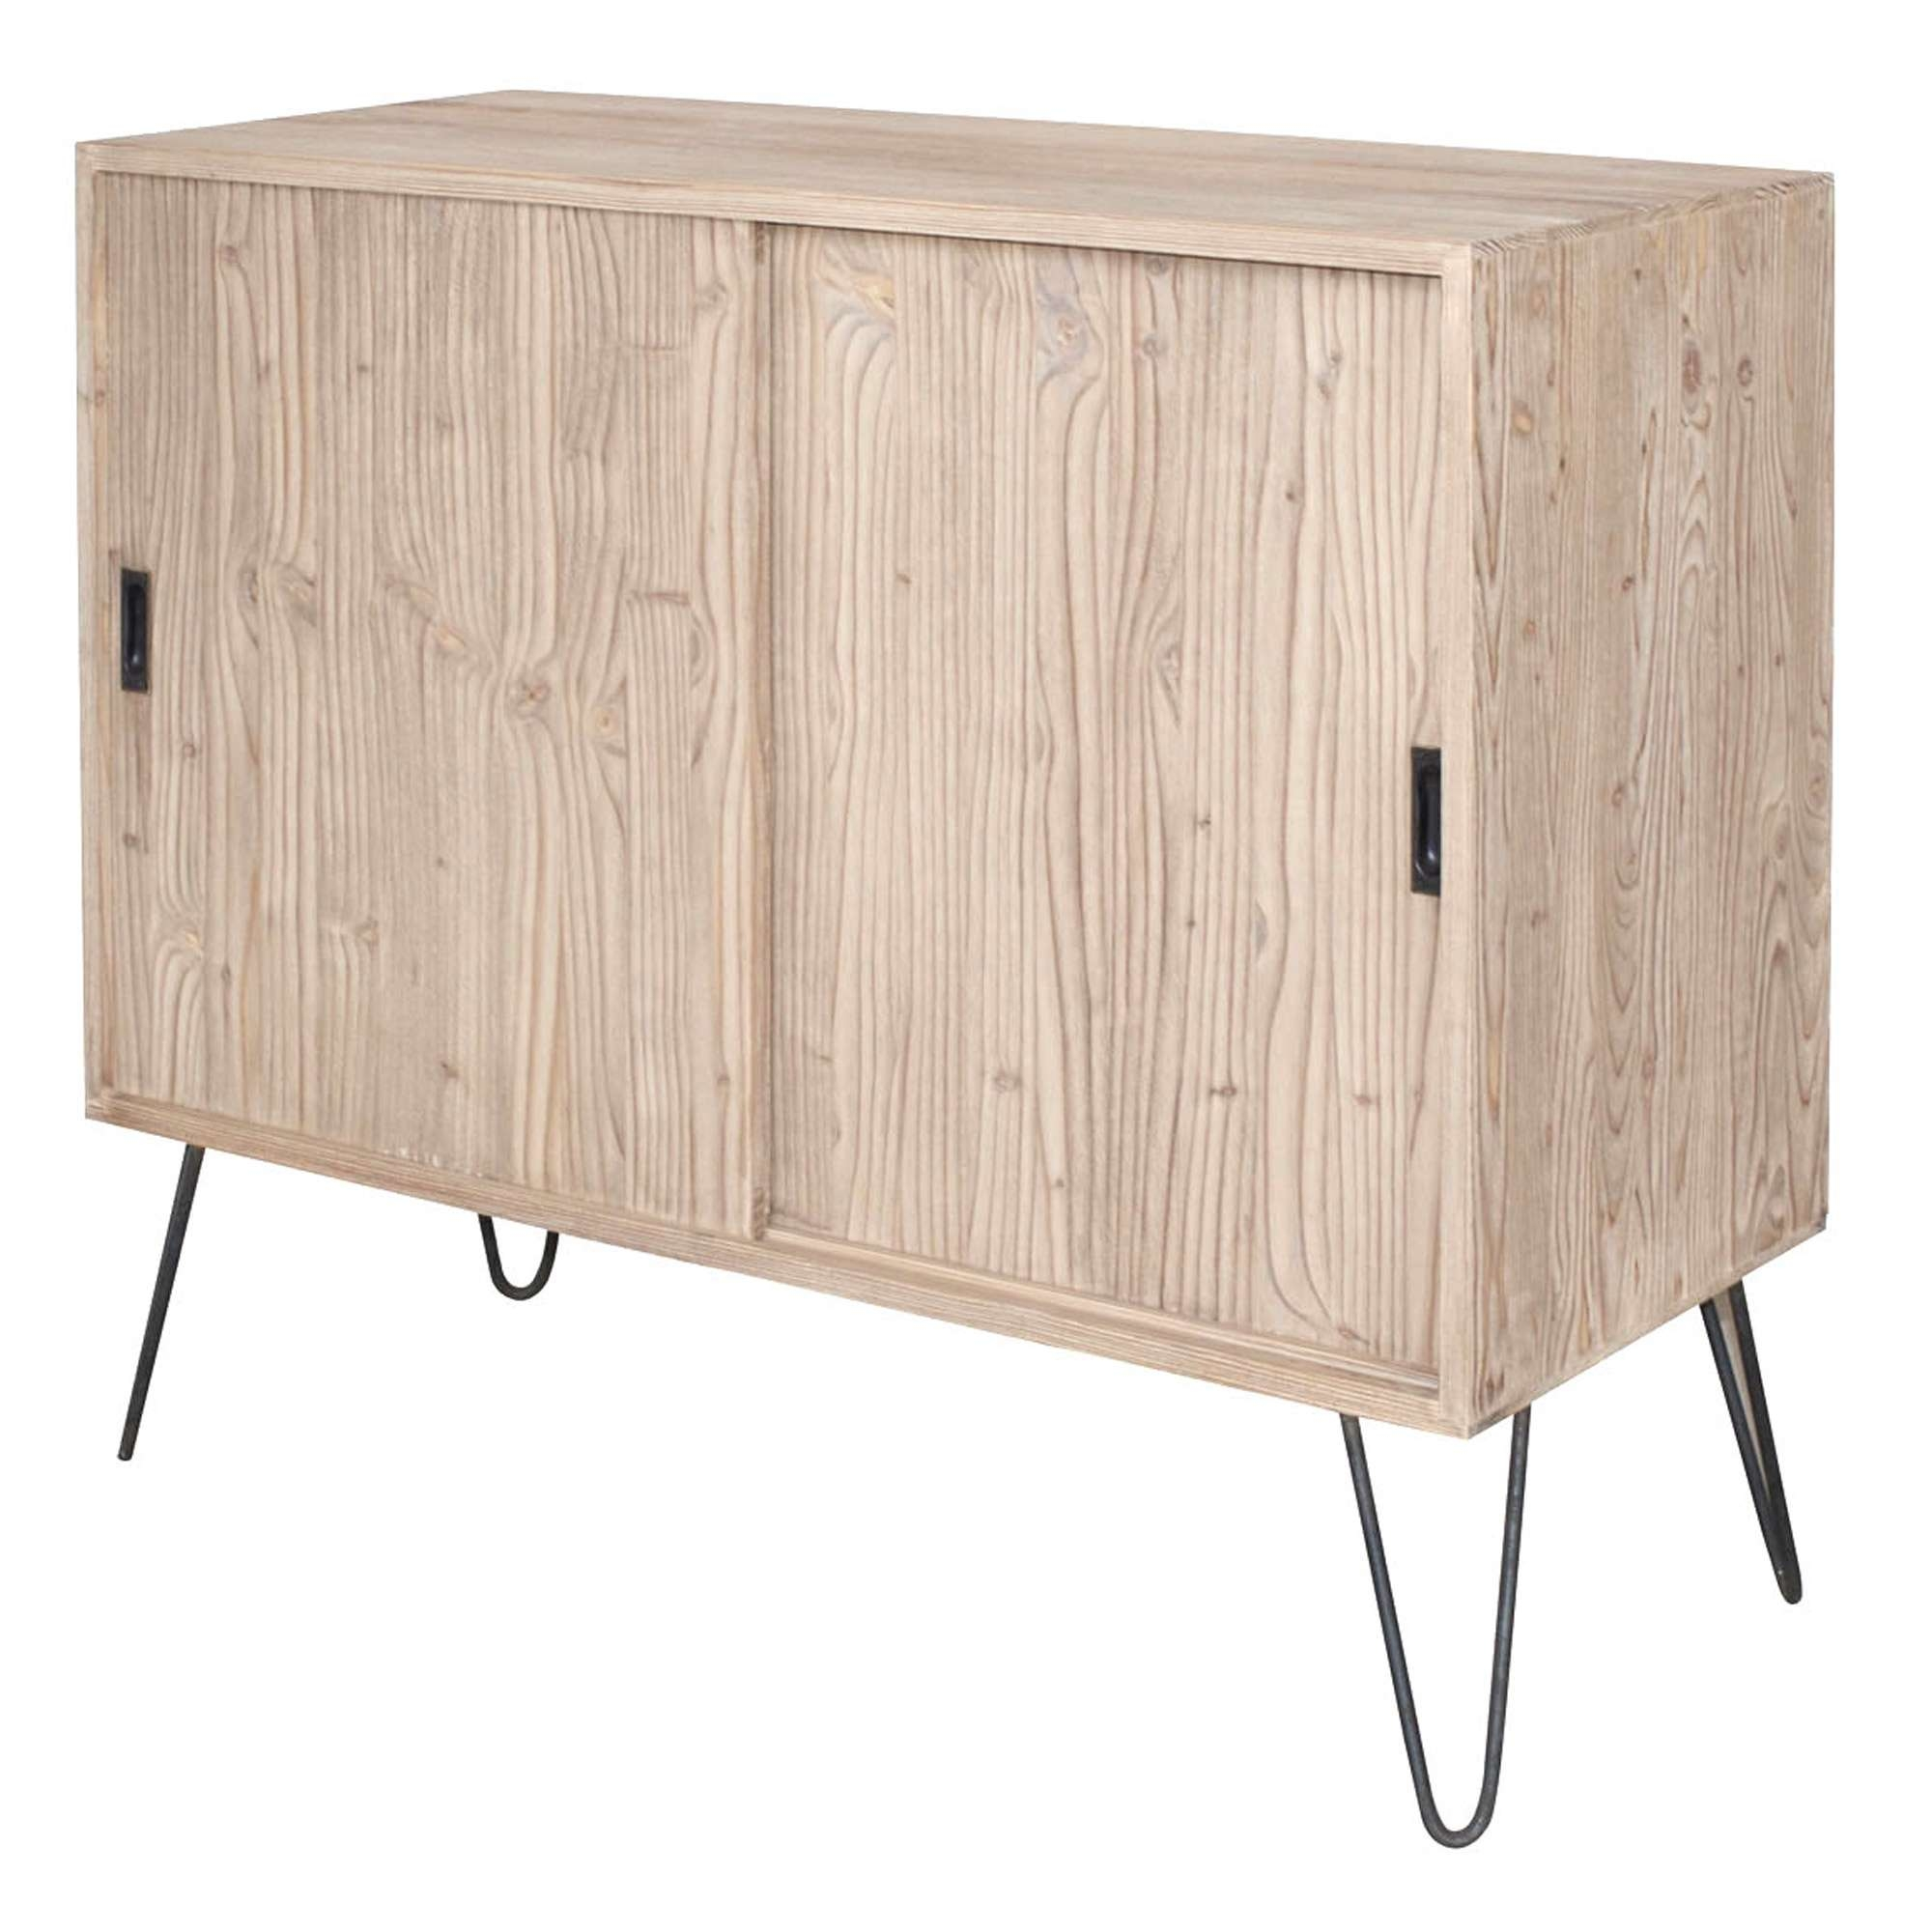 French Sliding Door Sideboard With Metal Legs Within Metal Sideboards (View 9 of 20)